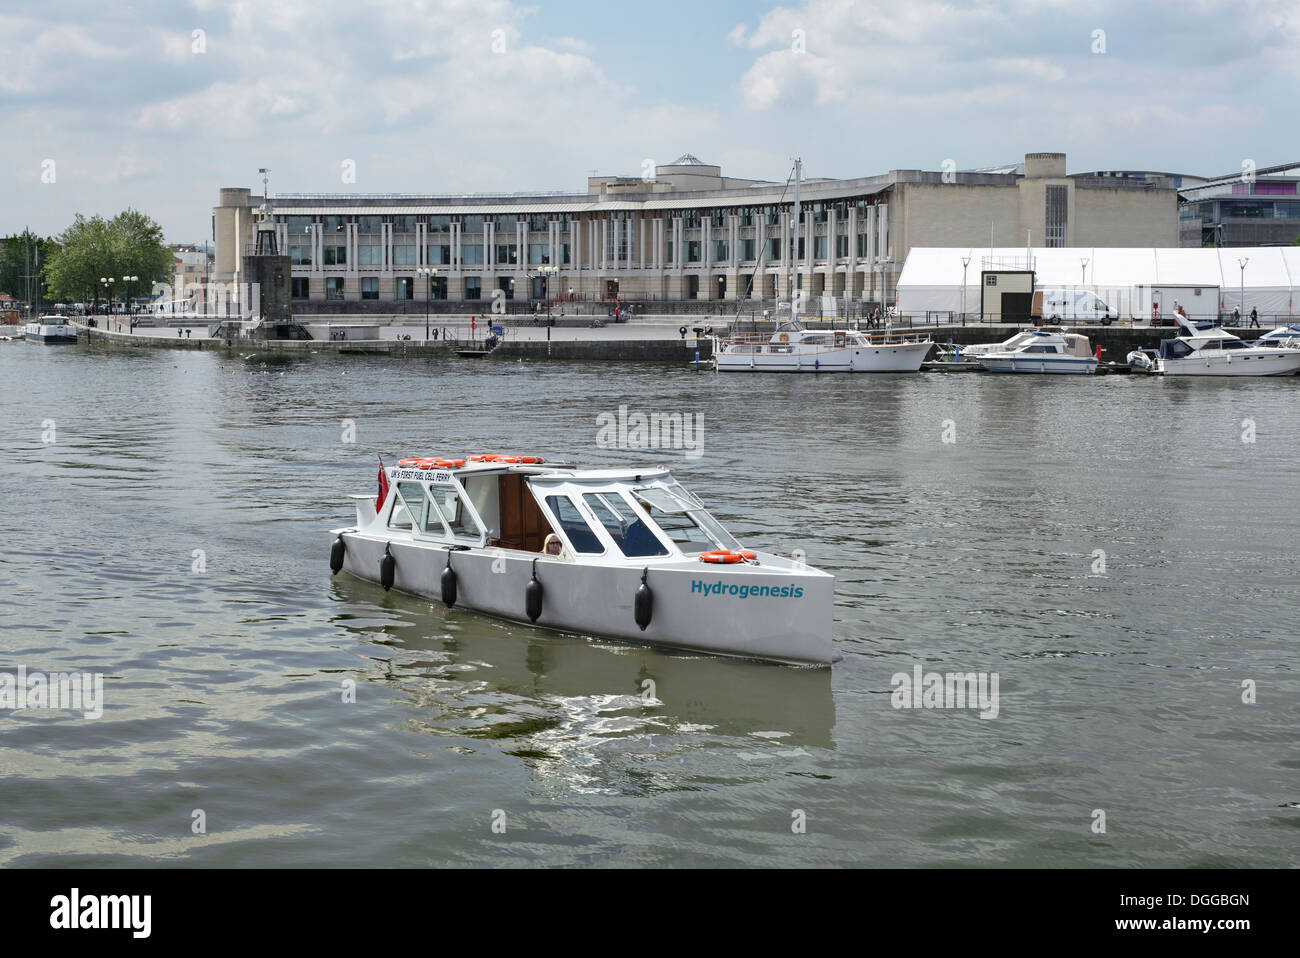 The UK's first hydrogen fuel cell ferry, Hydrogenesis, in Bristol docks. - Stock Image